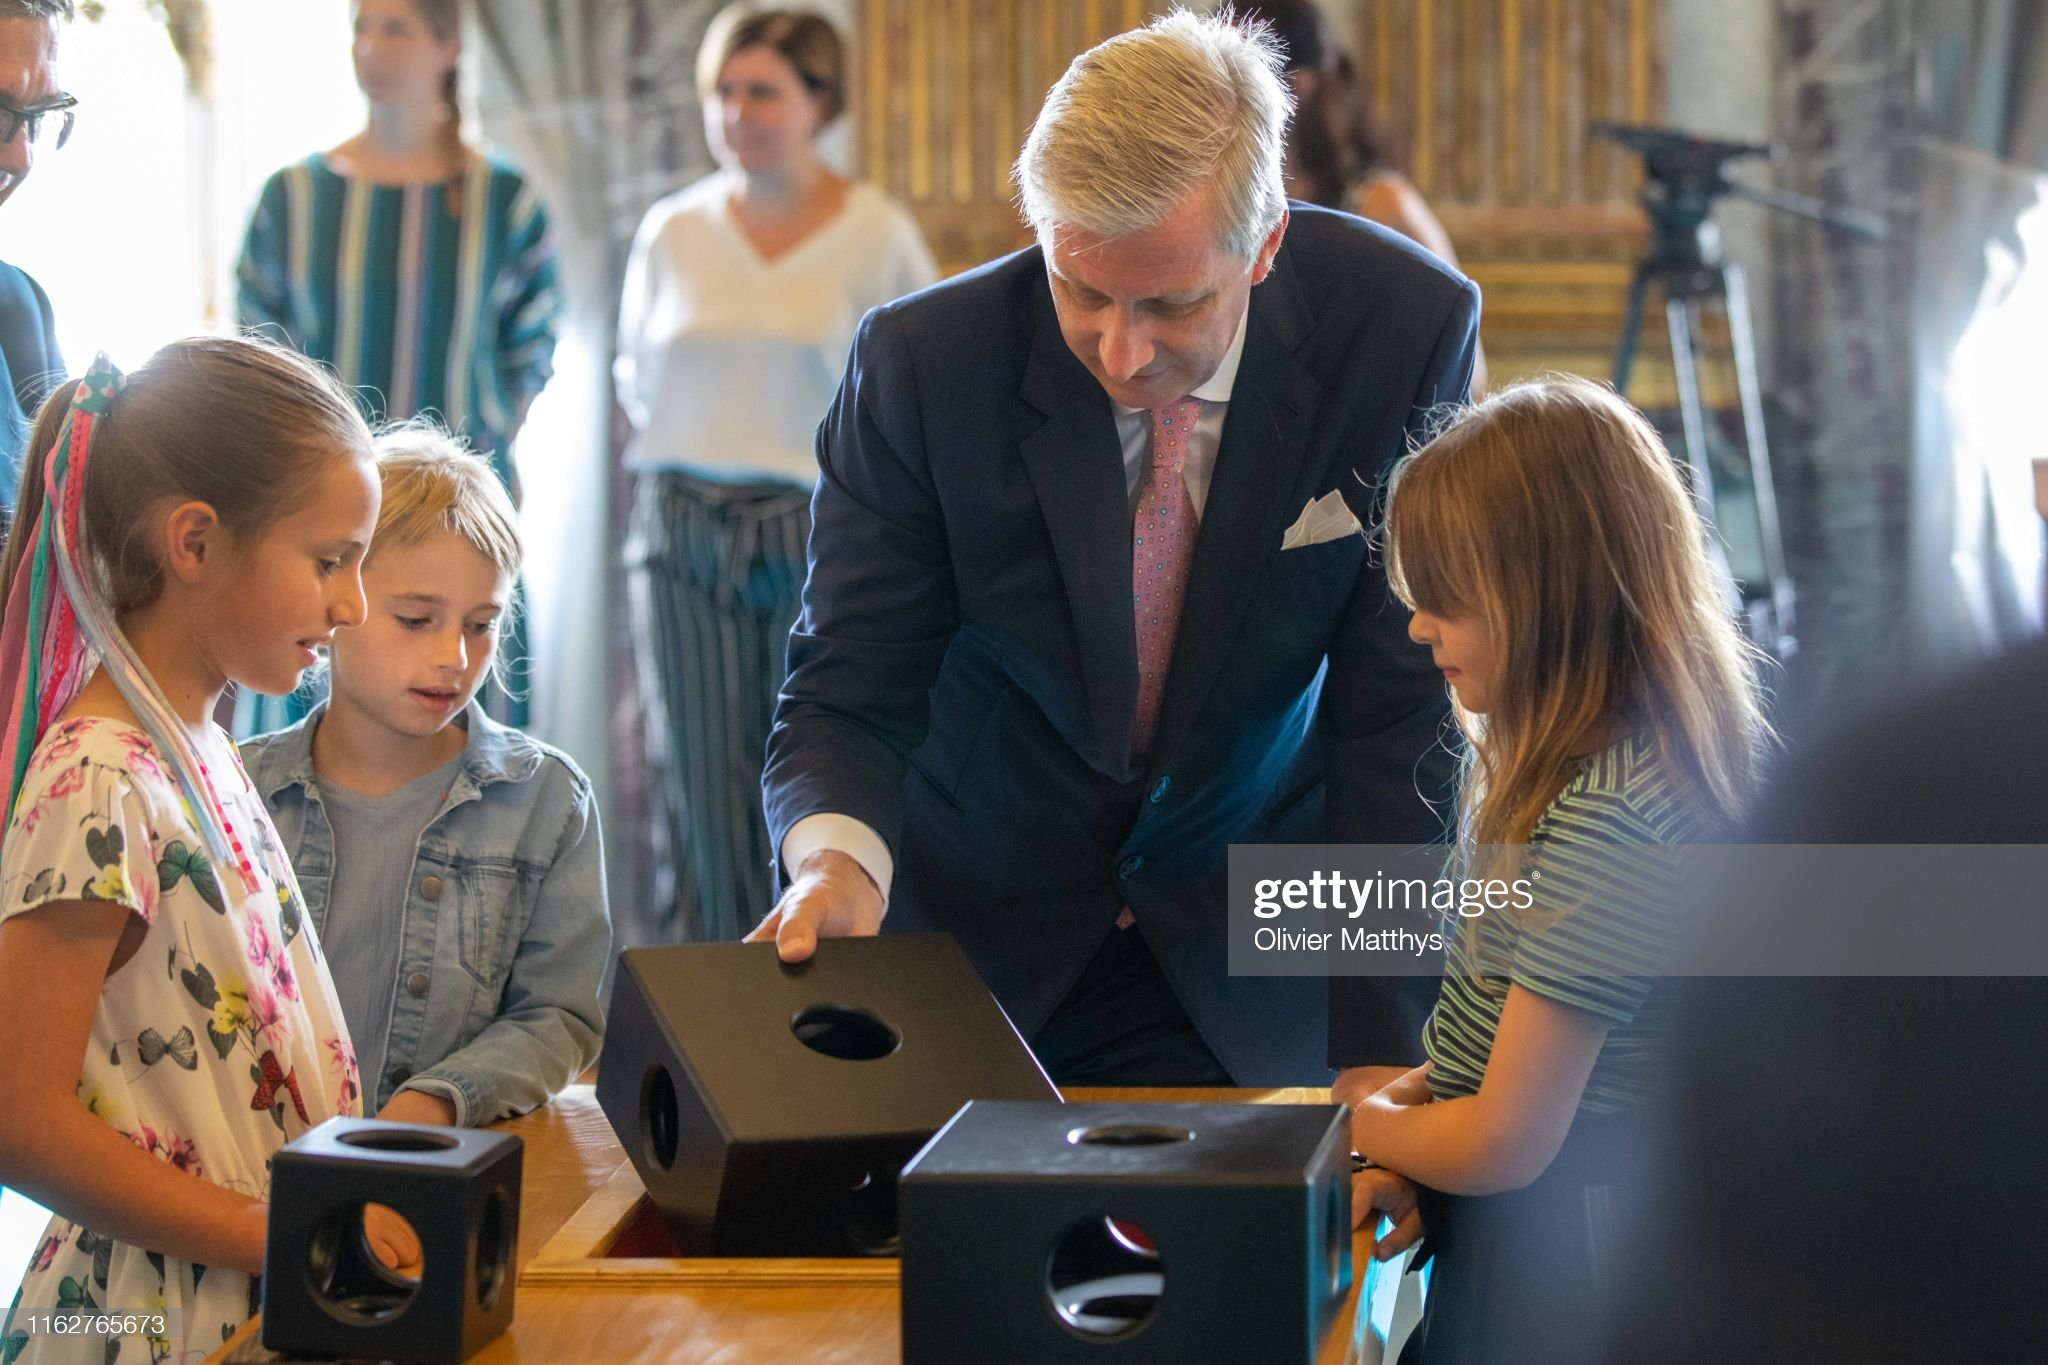 CASA REAL BELGA - Página 54 King-philippe-of-belgium-attends-the-technopolis-section-of-the-at-picture-id1162765673?s=2048x2048